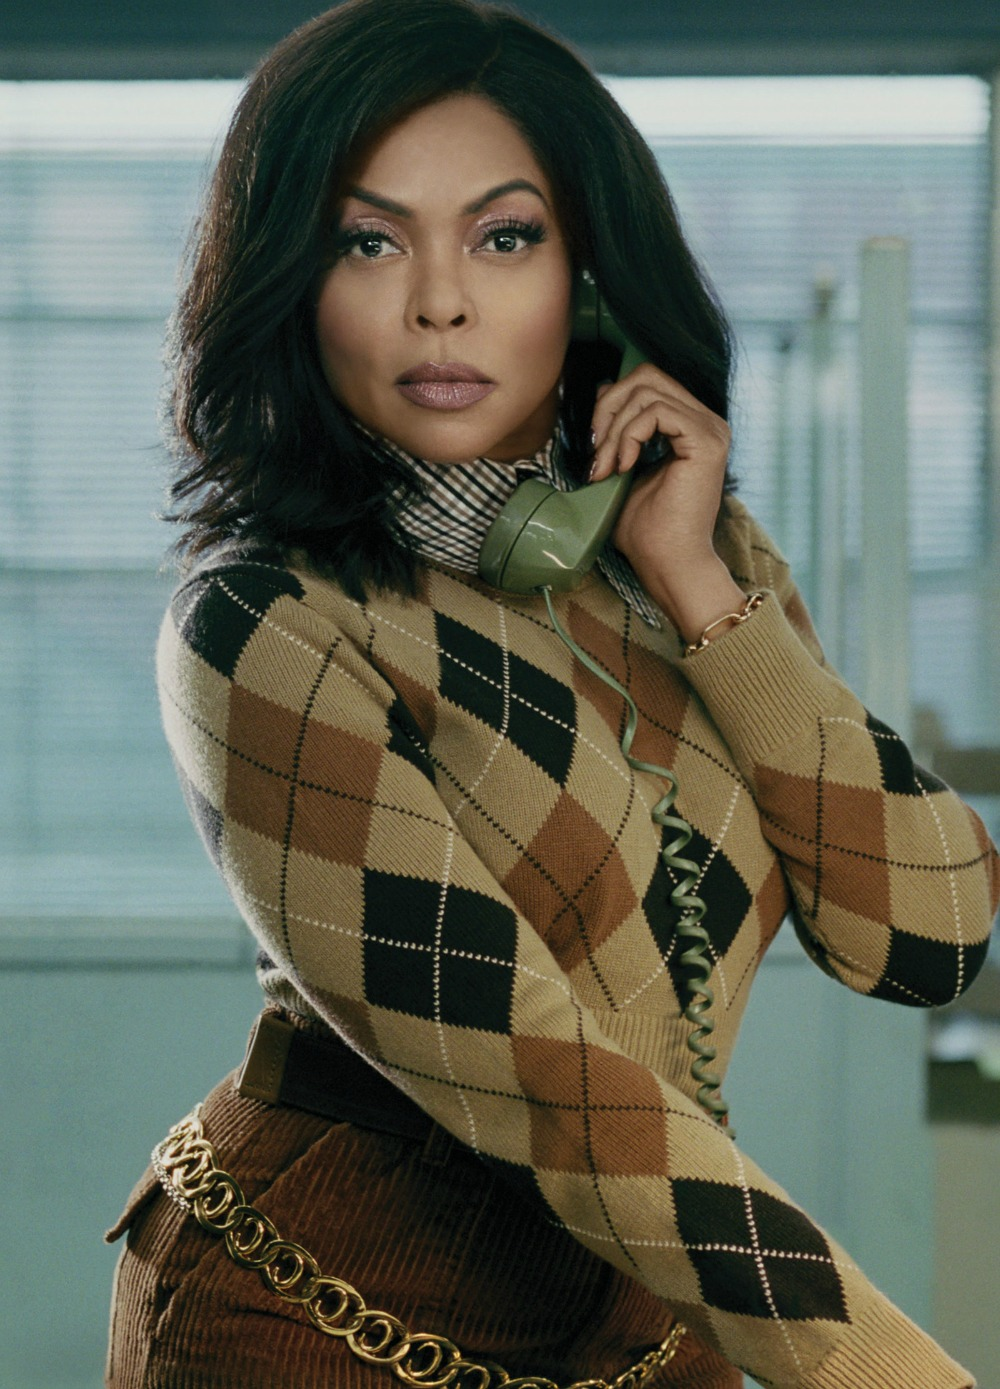 I loved the   Taraji Henson spread   in January's  InStyle Magazine, especially the shot of her channeling Mary Tyler Moore's Minneapolis beret toss.